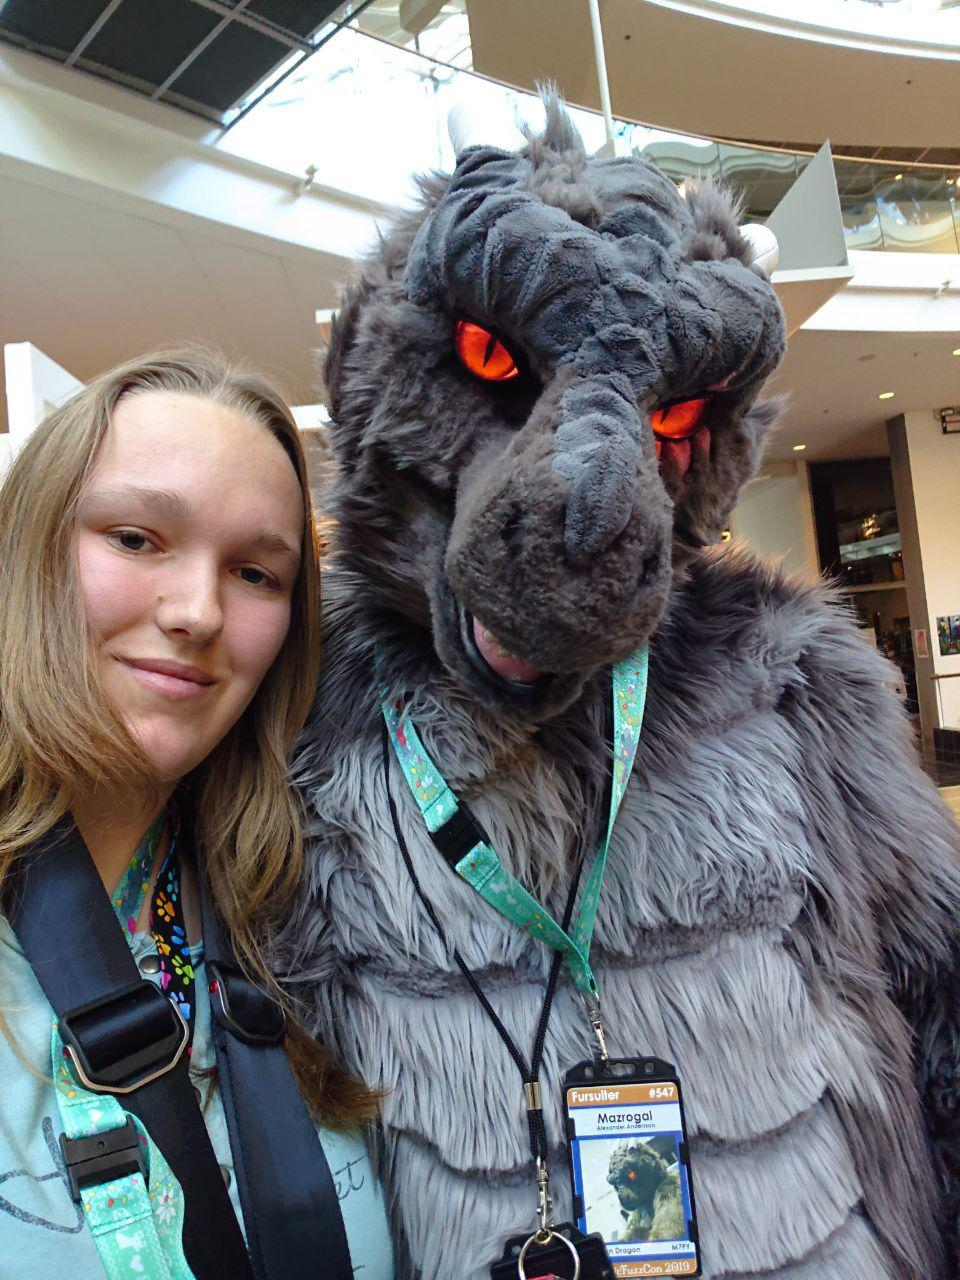 NFC2019 ''A Dragon Never Say No To Fursuit Selfies!''